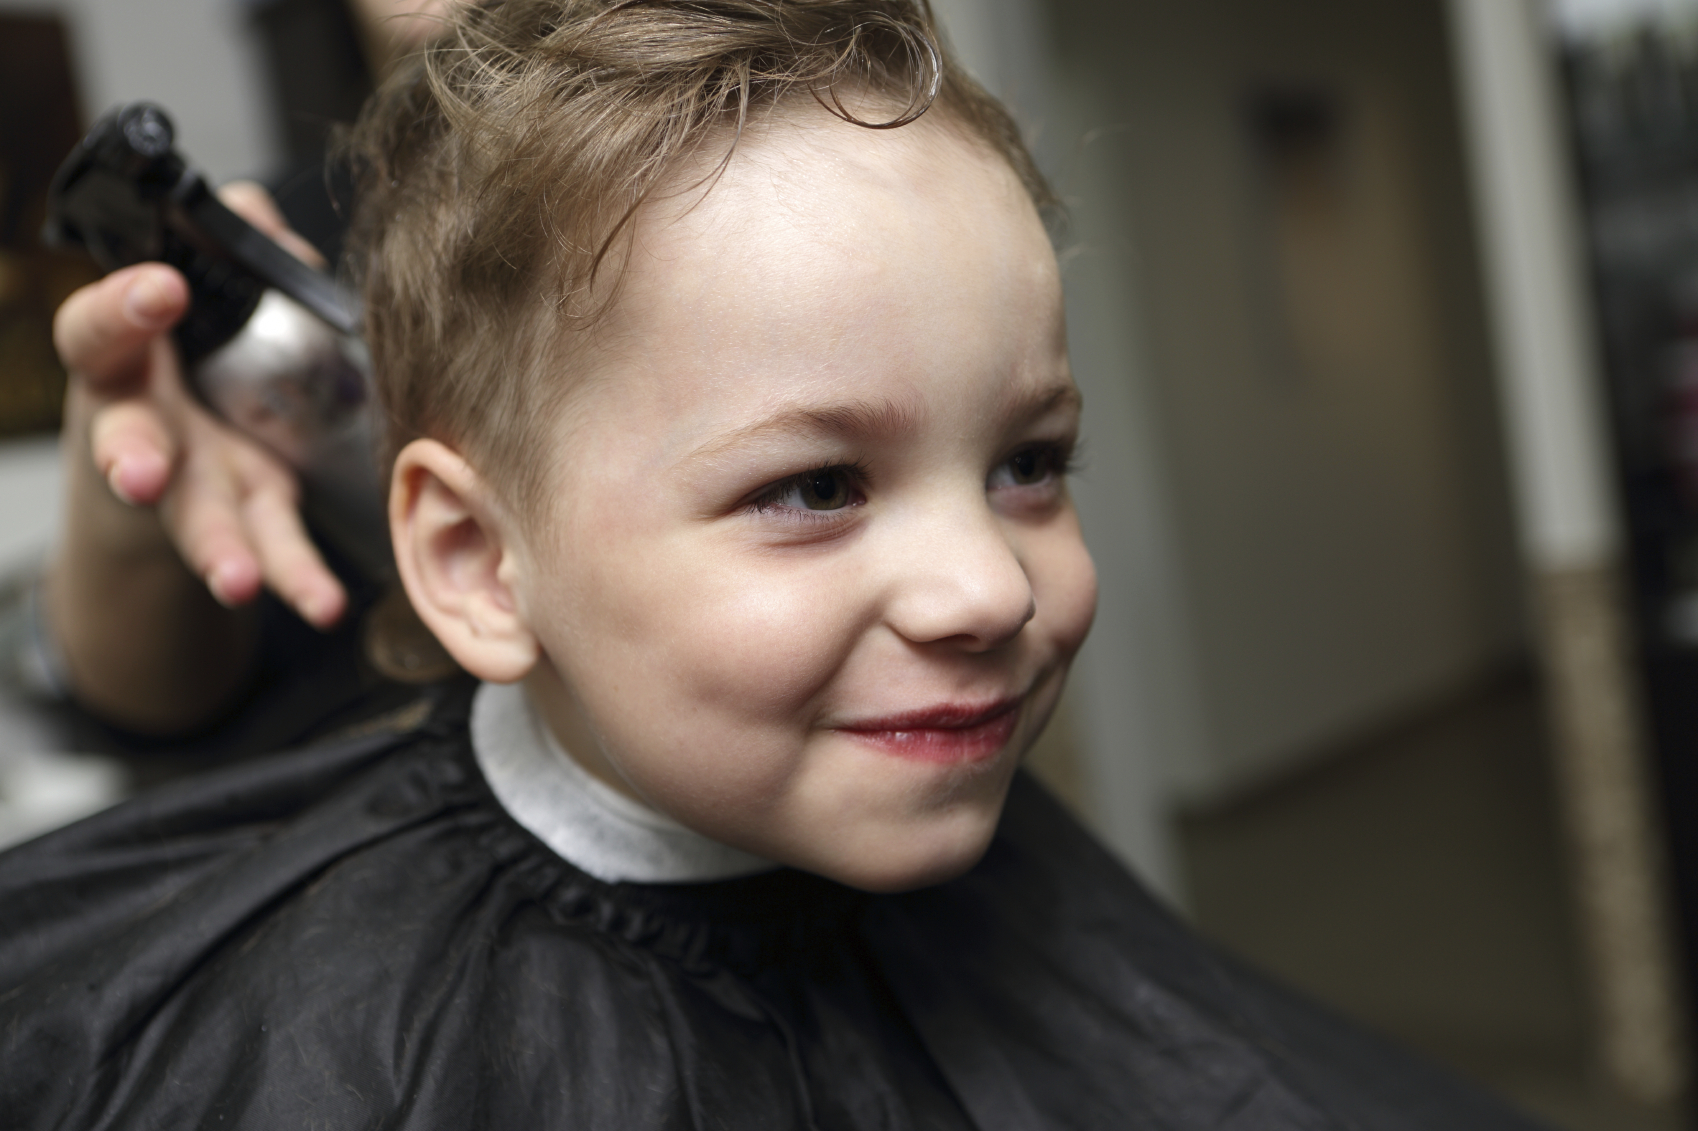 Portrait of a smiling kid at the barbershop